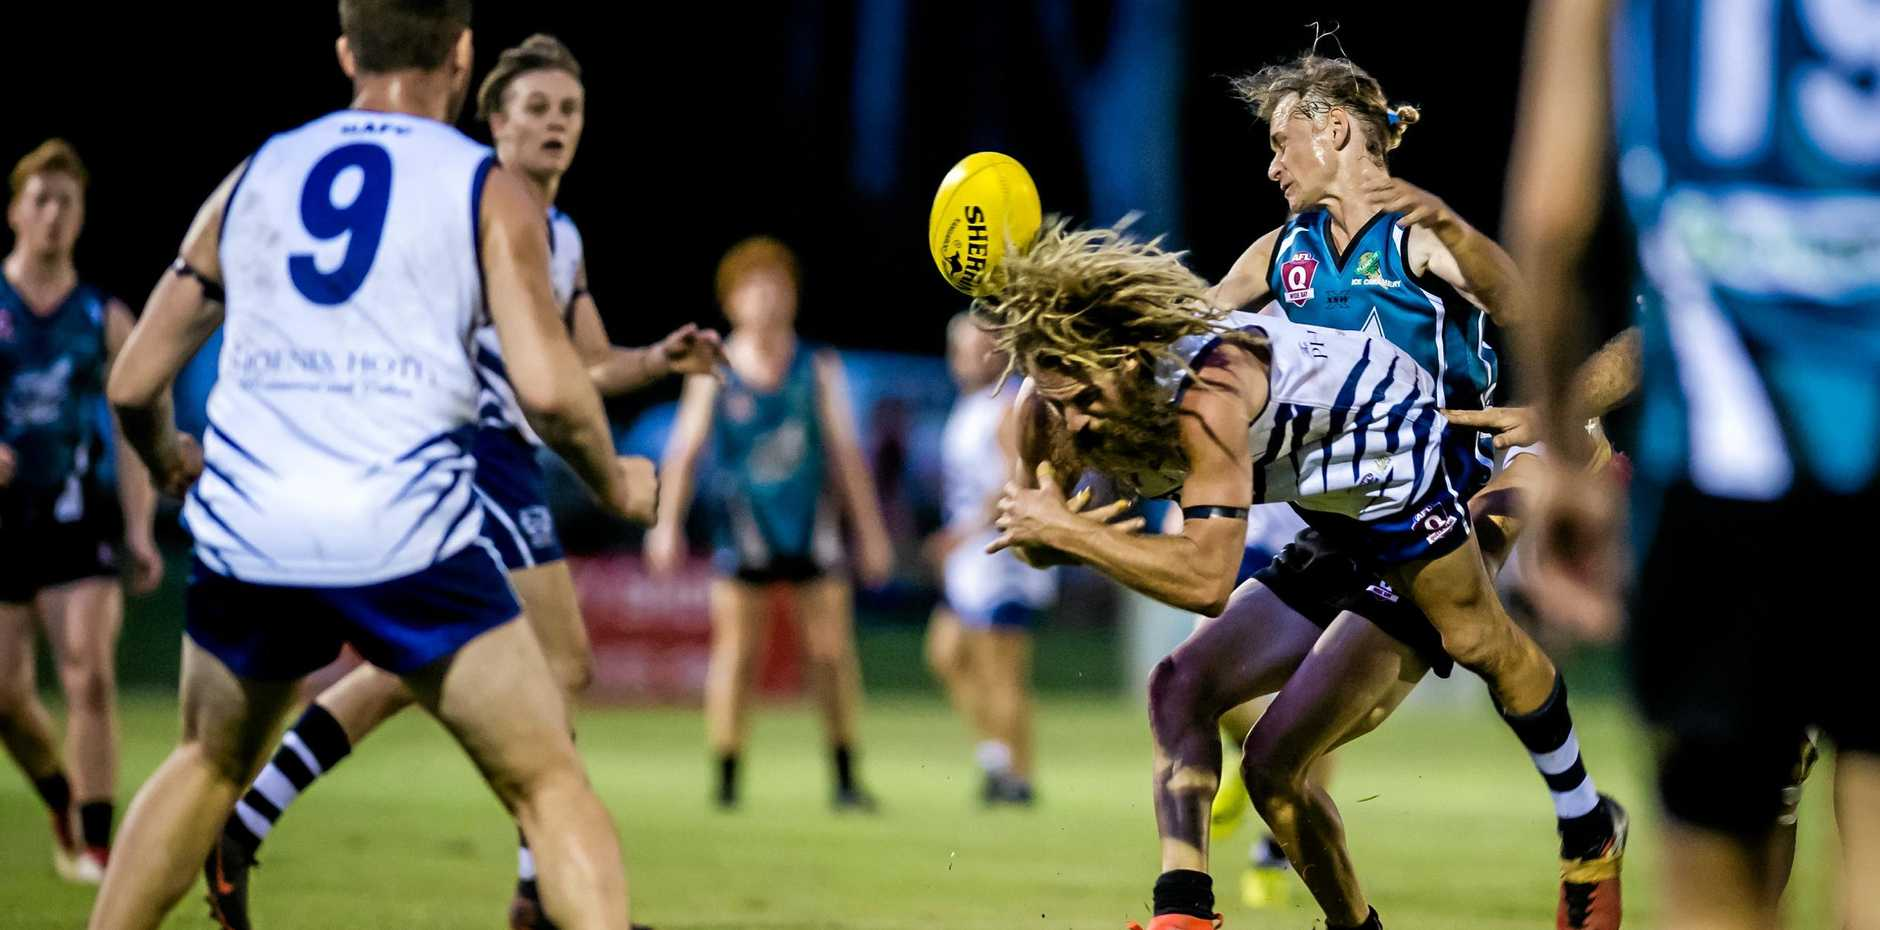 PLAYER SUSPENDED: Gympie Cats captain Lanze Magin received a two week suspension for a melee two weeks ago. This photo was against Bay Power earlier this year.